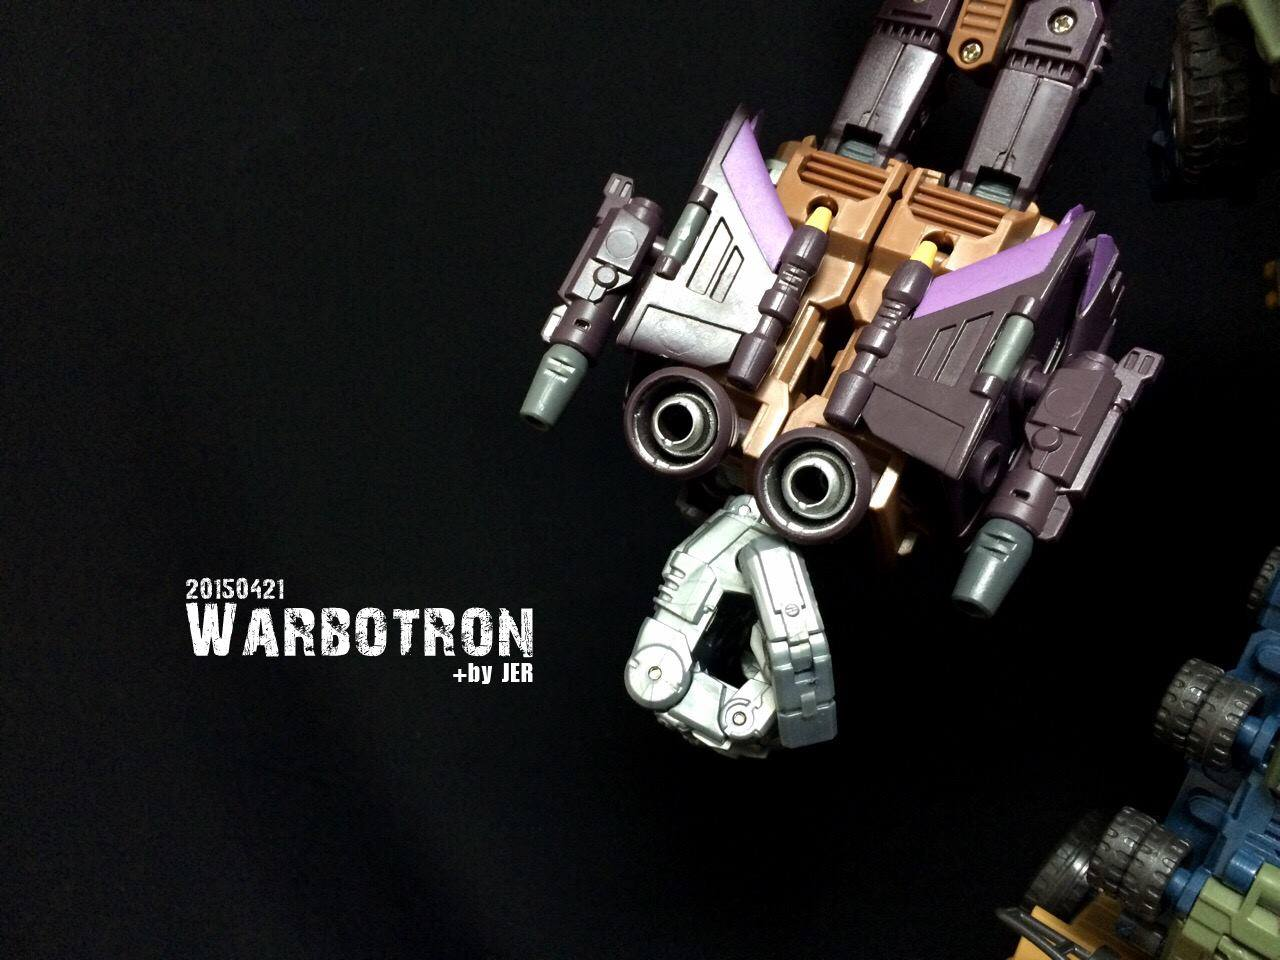 Warbotron - WB01 (Unofficial Bruticus)-11082397_633409753425198_5721781190730143137_o-1-.jpg